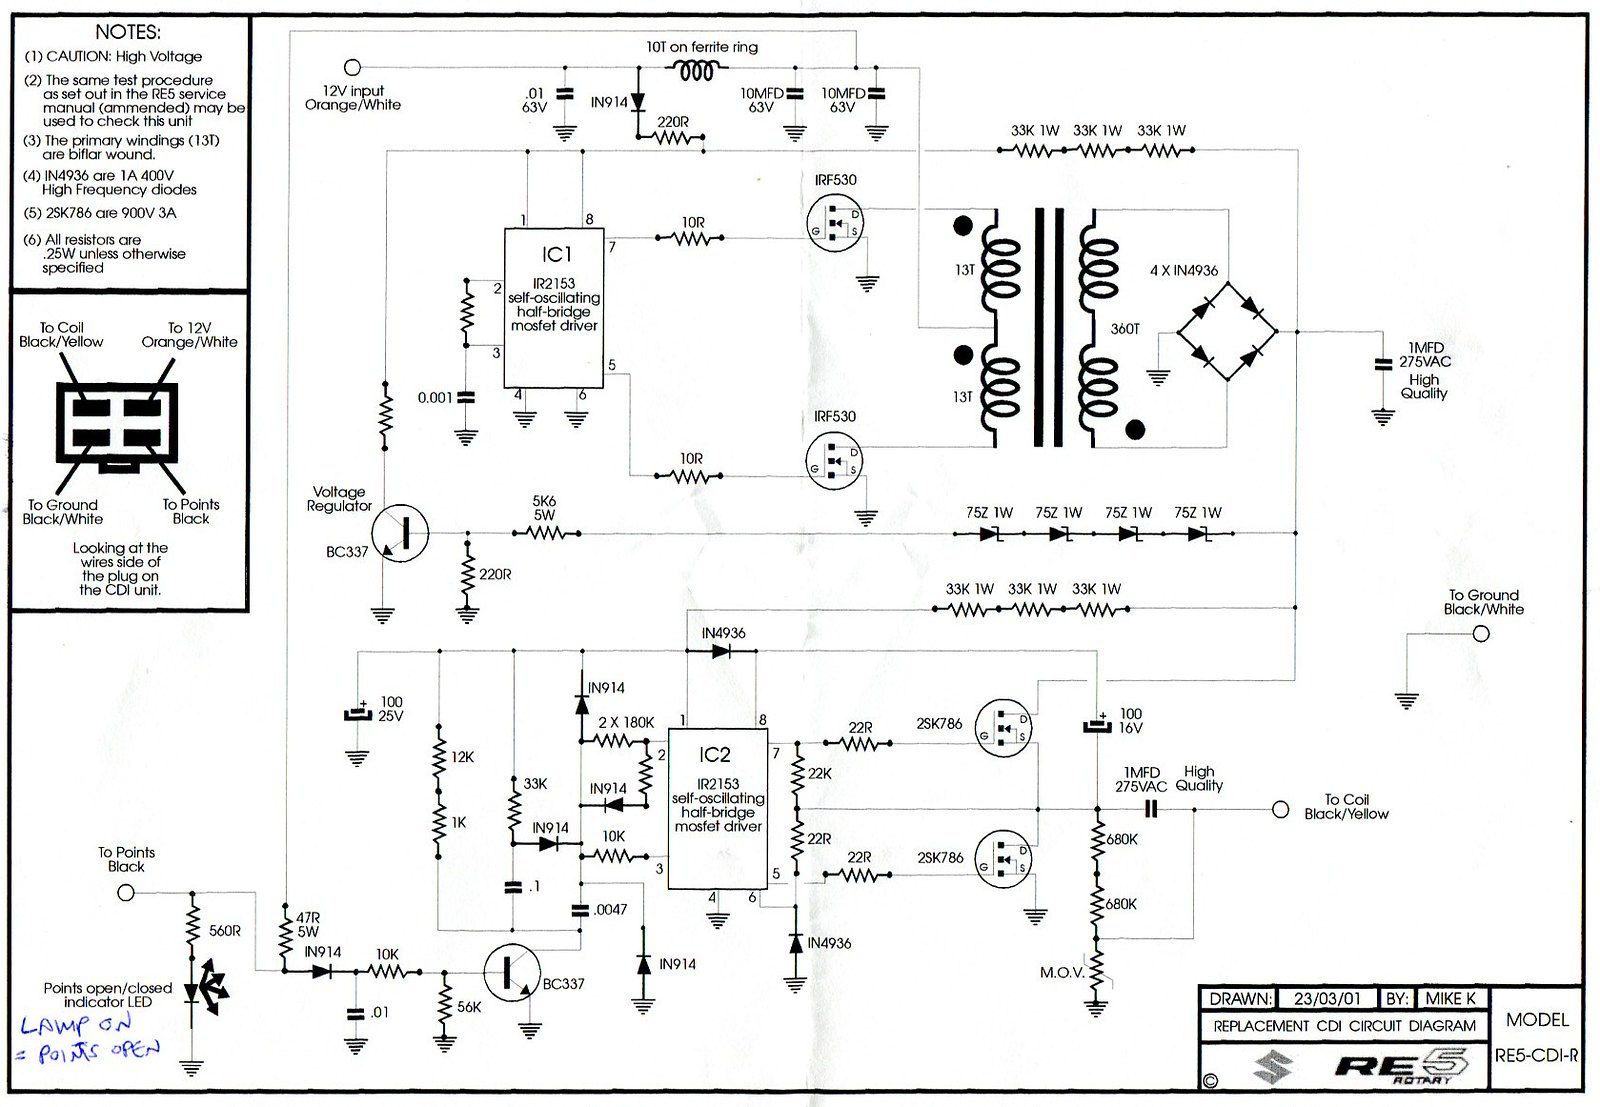 hight resolution of suzuki bolan wiring diagram pdf wiring diagram suzuki bolan wiring diagram pdf